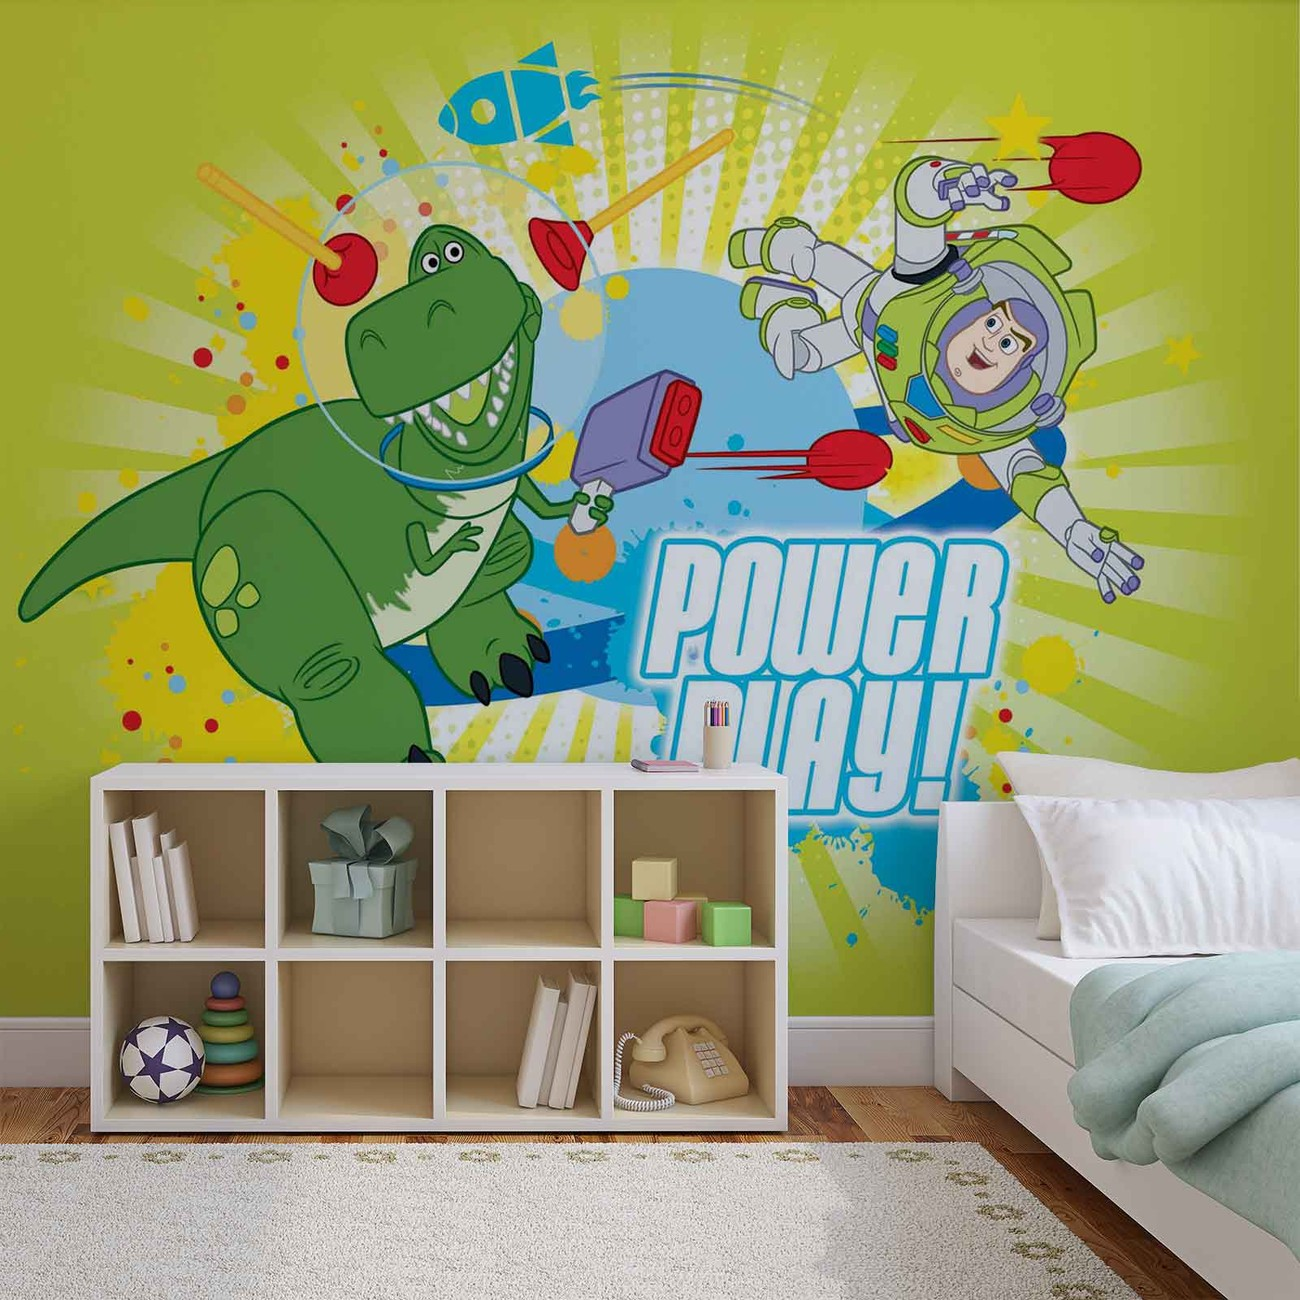 toy story disney poster mural papier peint acheter le. Black Bedroom Furniture Sets. Home Design Ideas